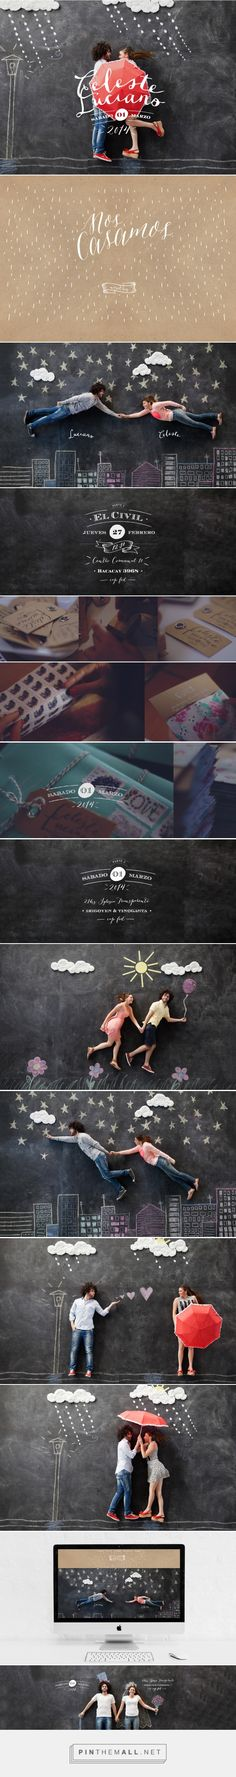 Wedding Invitation by Bando